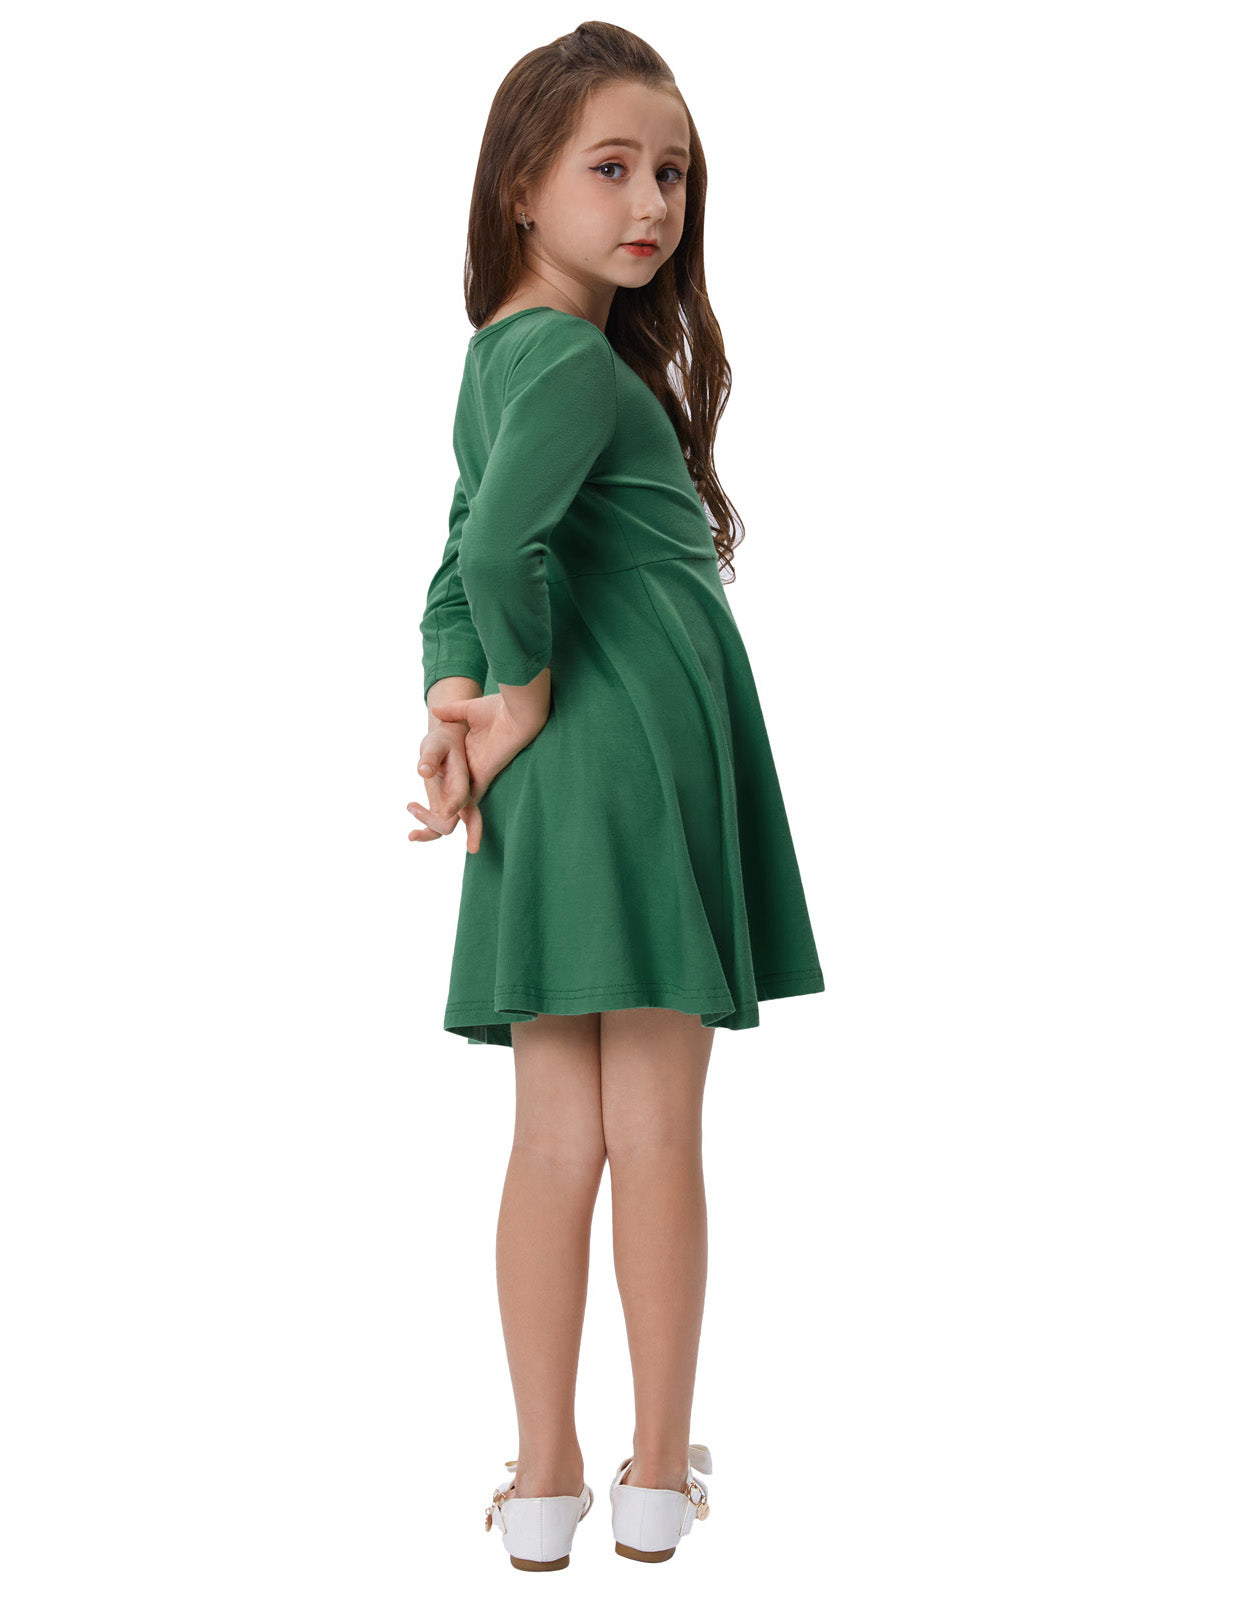 GRACE KARIN Children Kids Solid Color Long Sleeve Cotton Girl\'s Dress